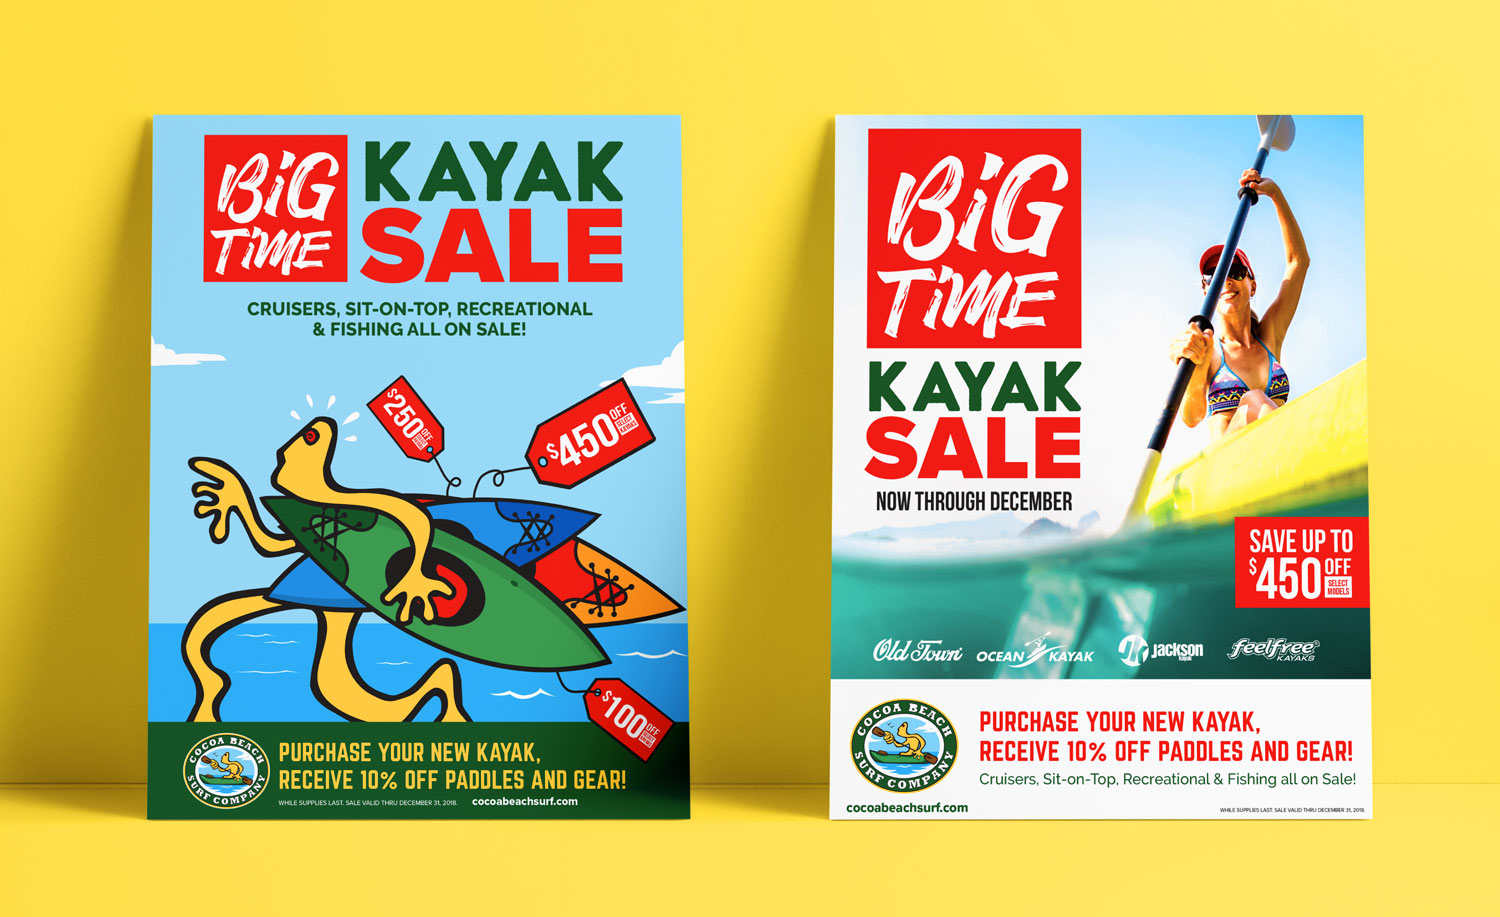 Poster and advertisement for Kayak Sale